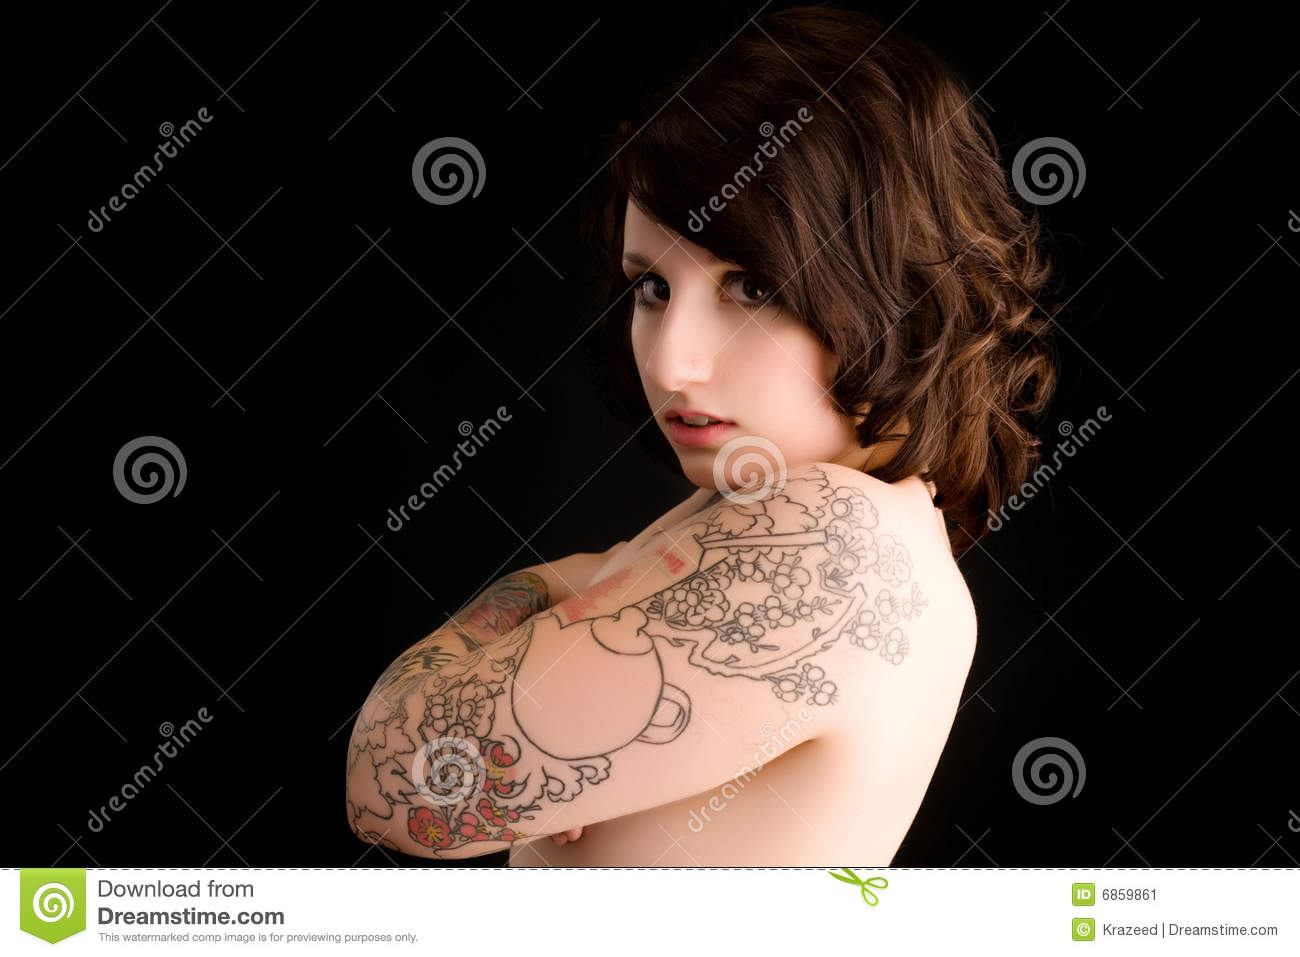 Sexy pin up tattoo girl stock image image 6859861 for Sexy pin up tattoos